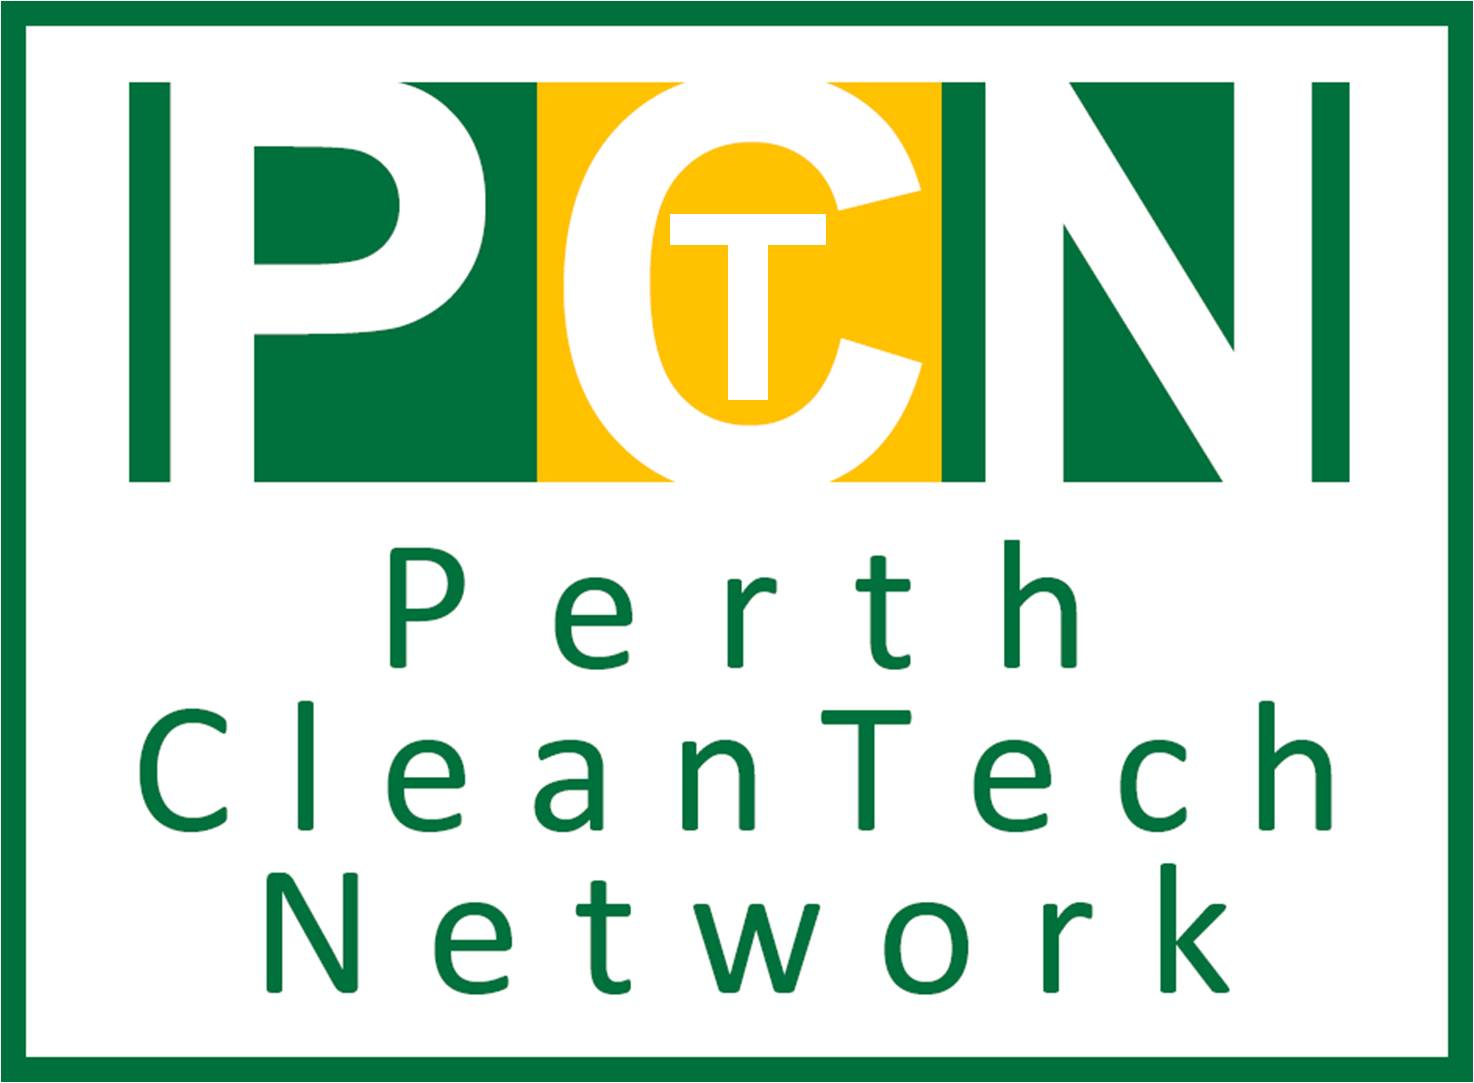 Perth Cleantech Network